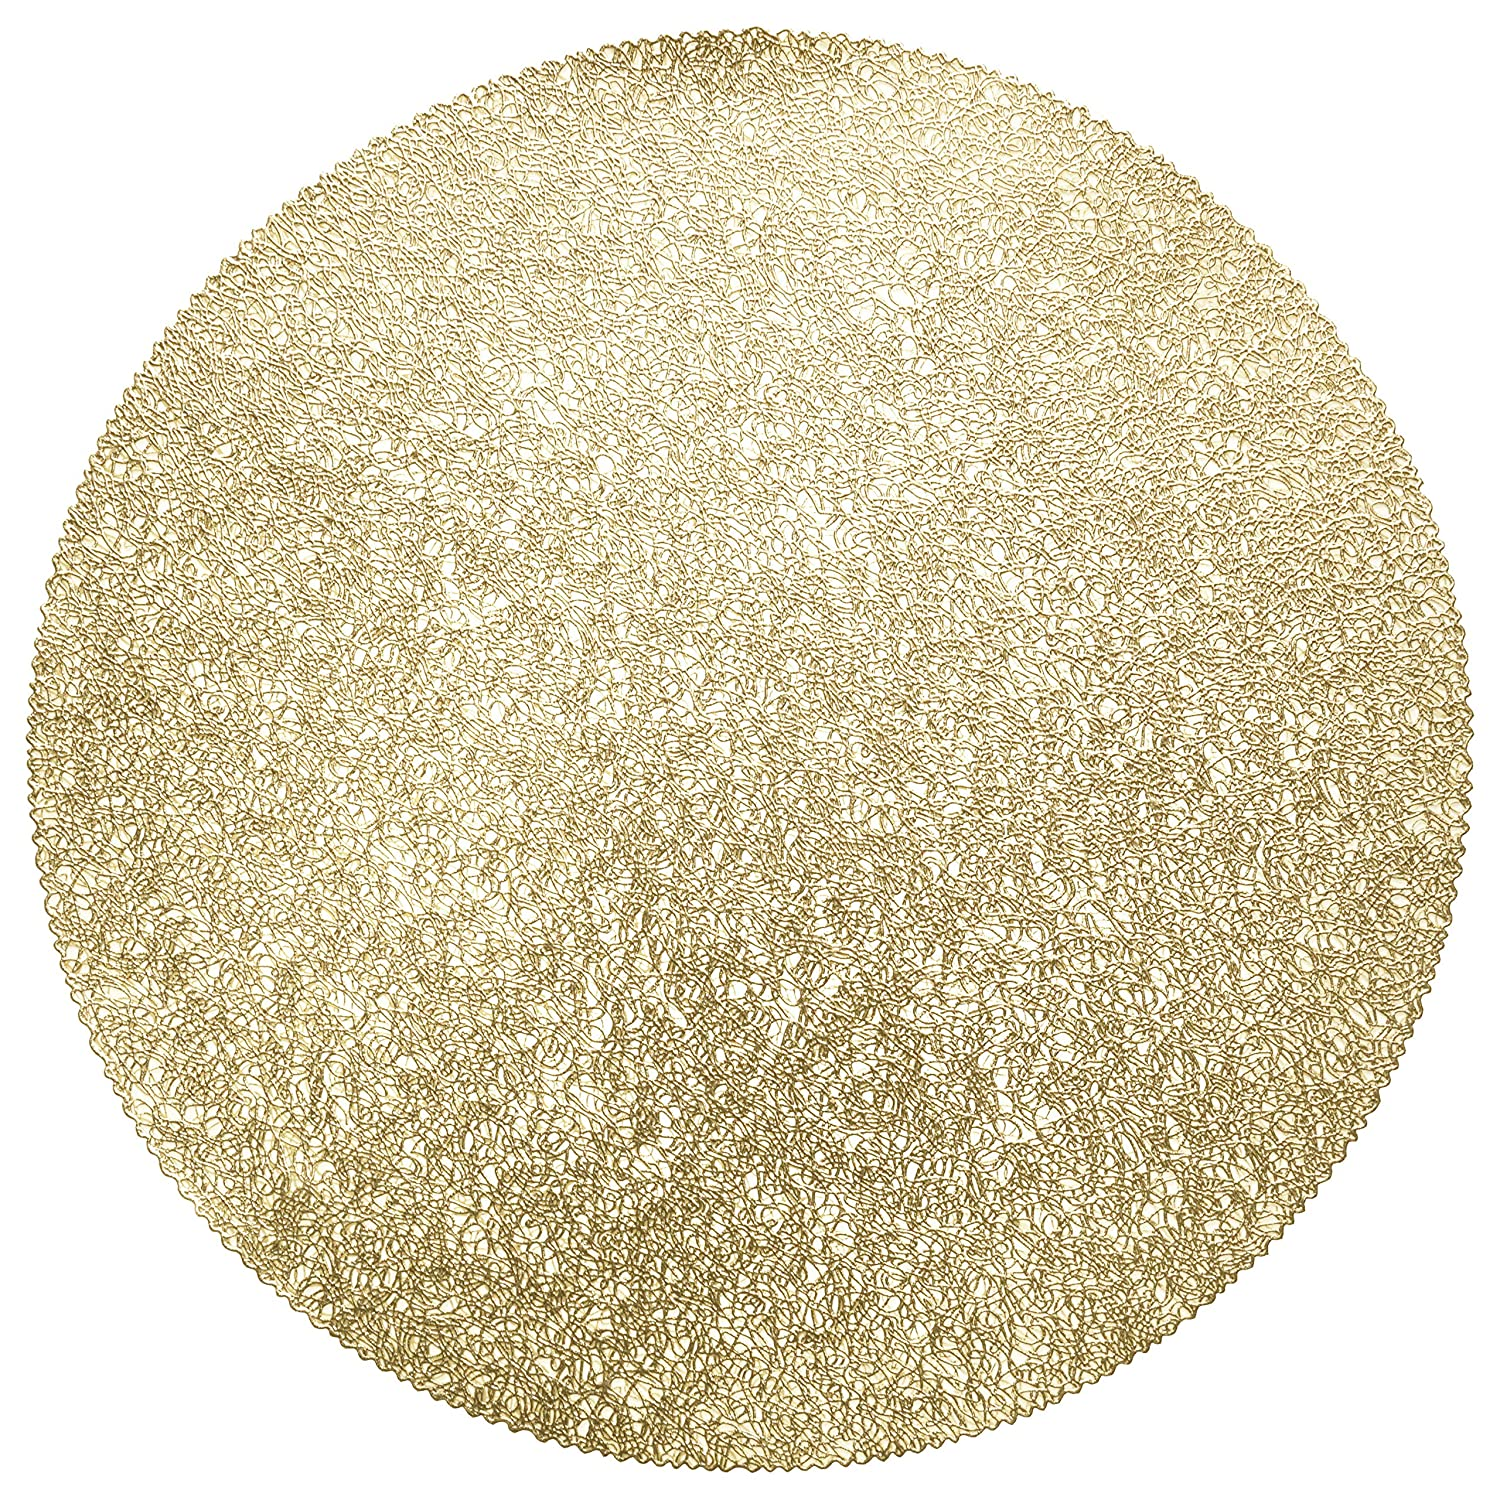 """"""" Occasions"""" 10 Pieces Pack Pressed Vinyl Metallic Placemats/Wedding Accent Centerpiece Placemat (Glam Gold)"""